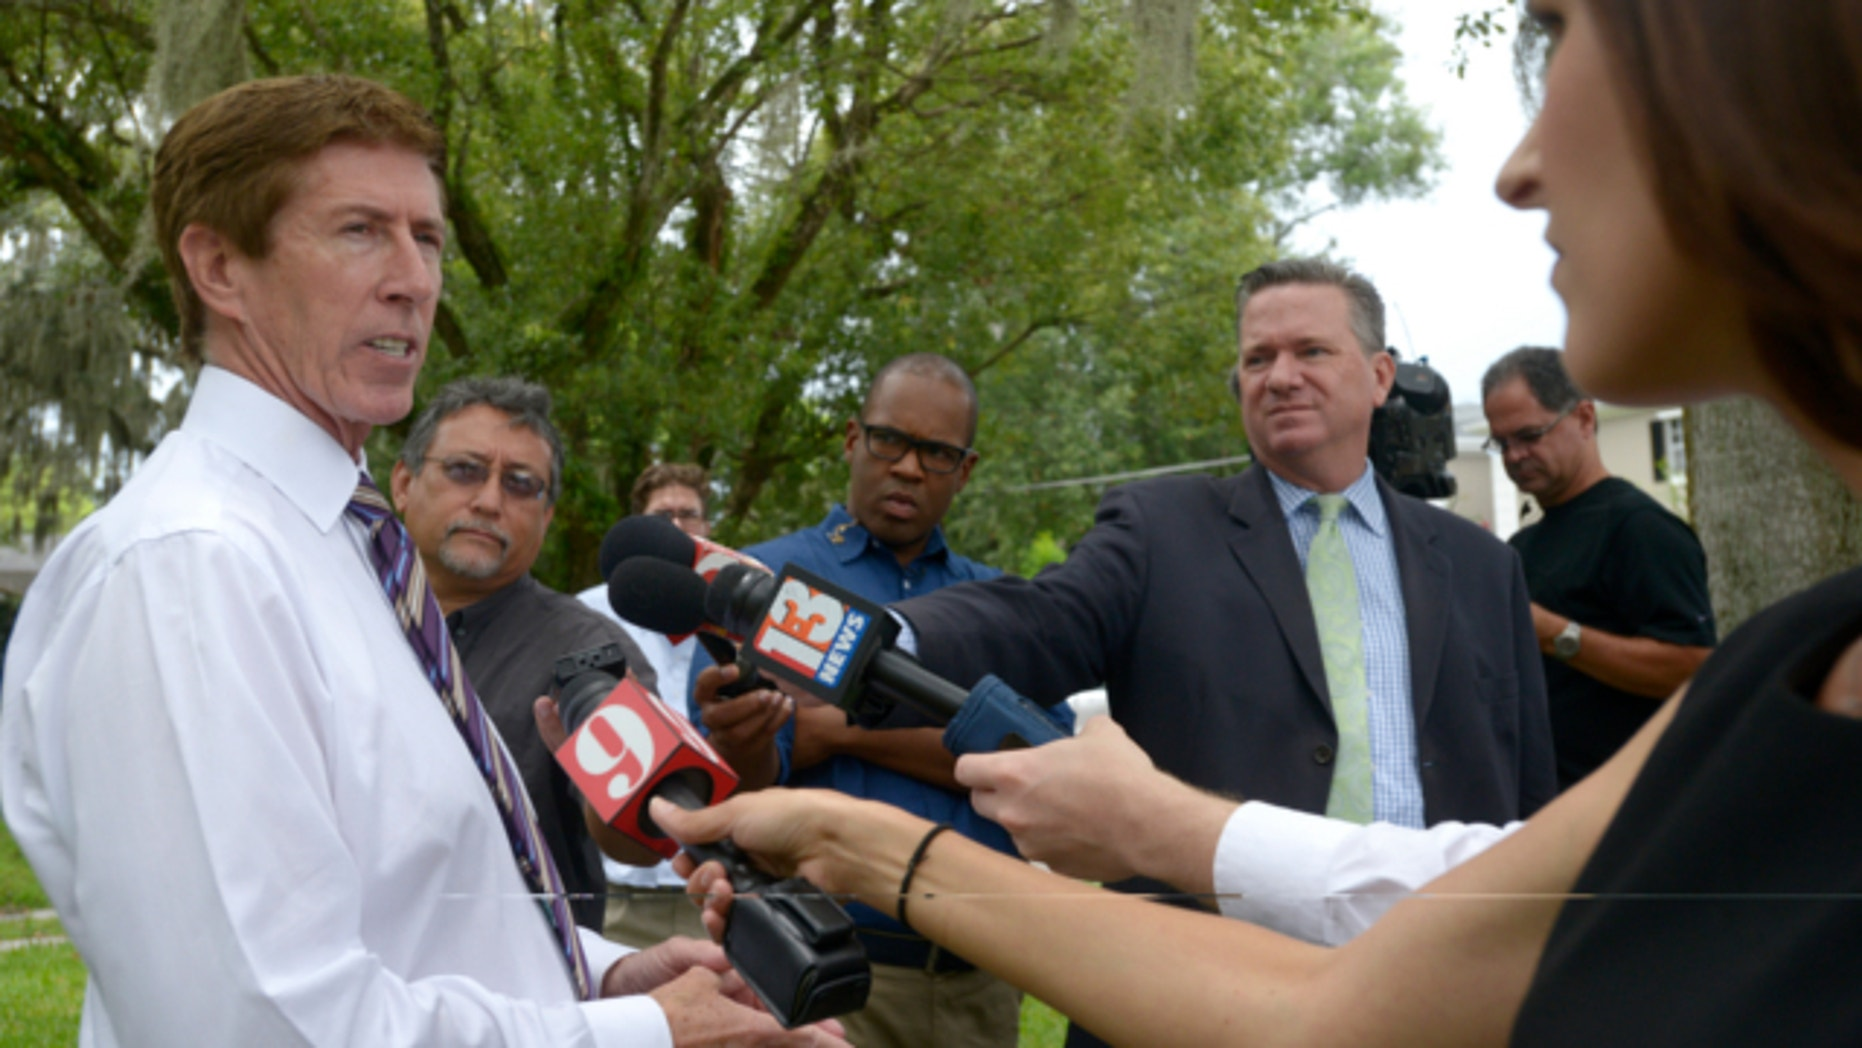 July 24, 2013: George Zimmerman attorney Mark O'Mara answers questions from reporters outside his offices in Orlando, Fla.